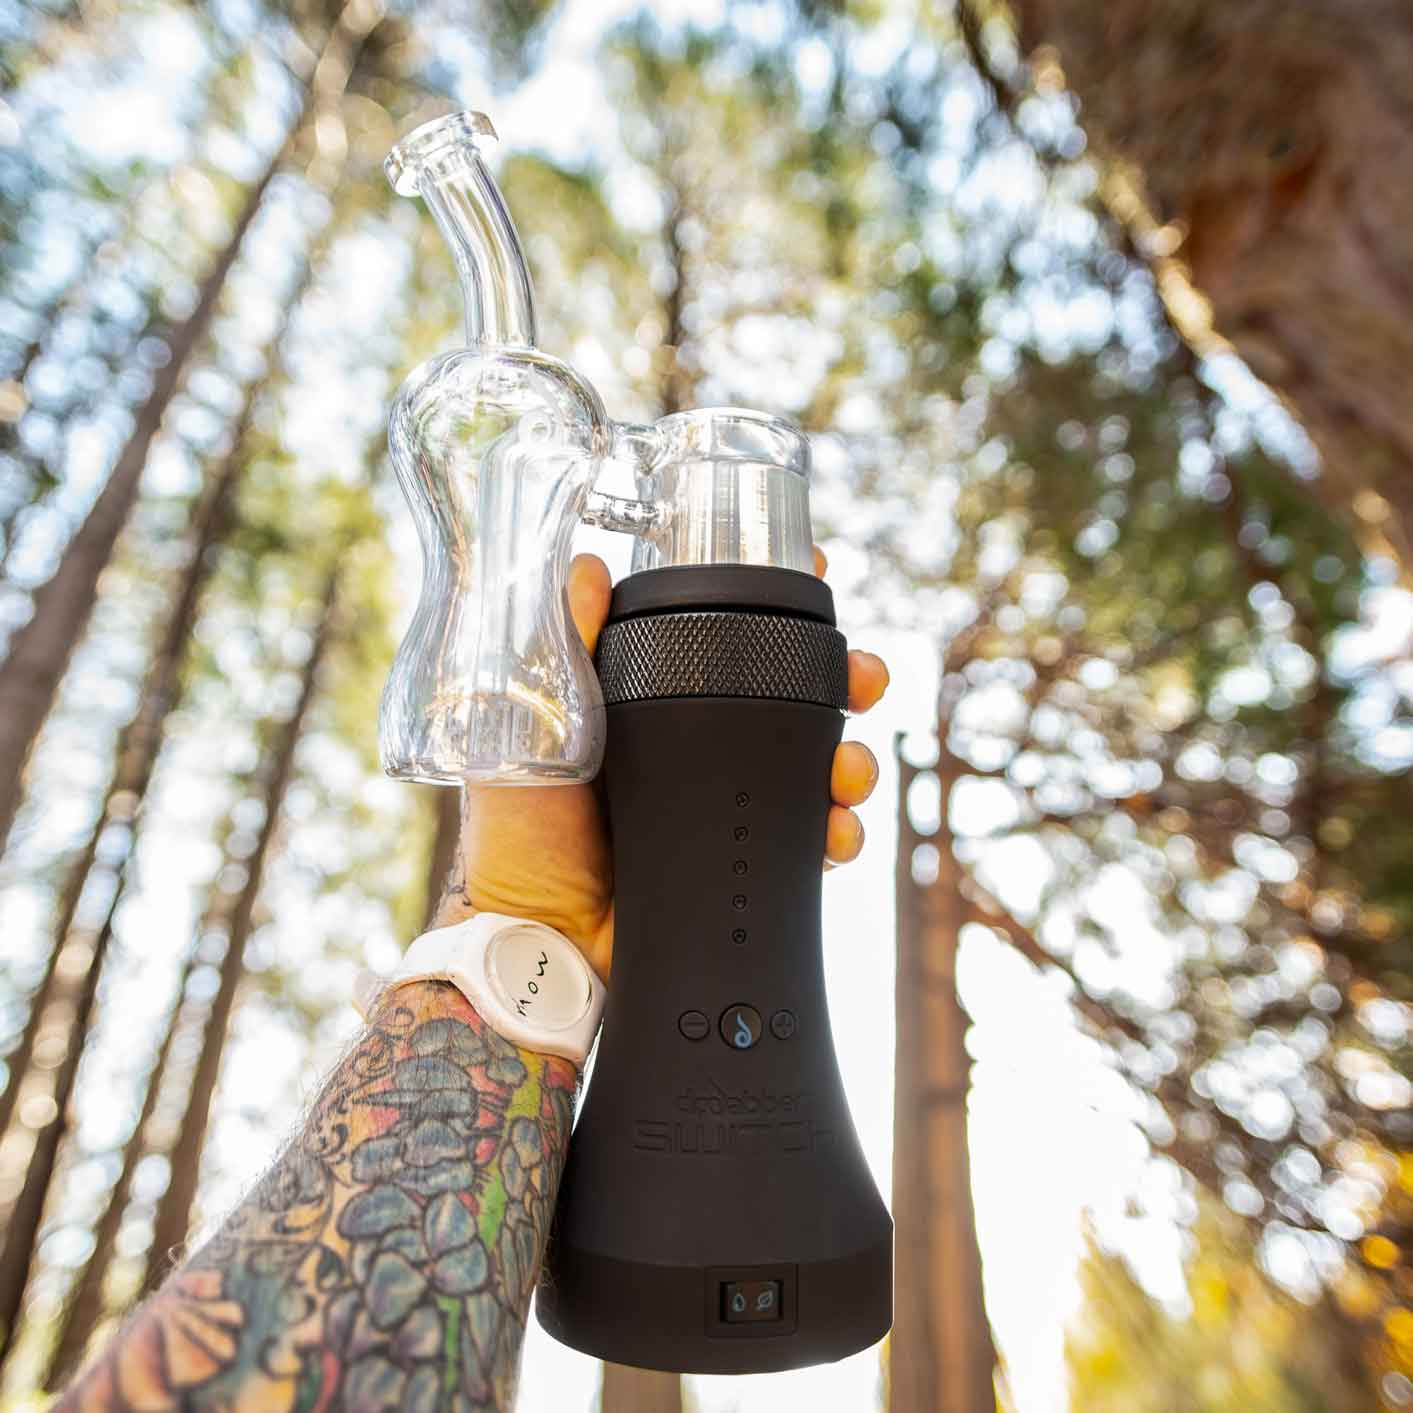 Dr Dabber SWITCH electric dab rig, vaporizer